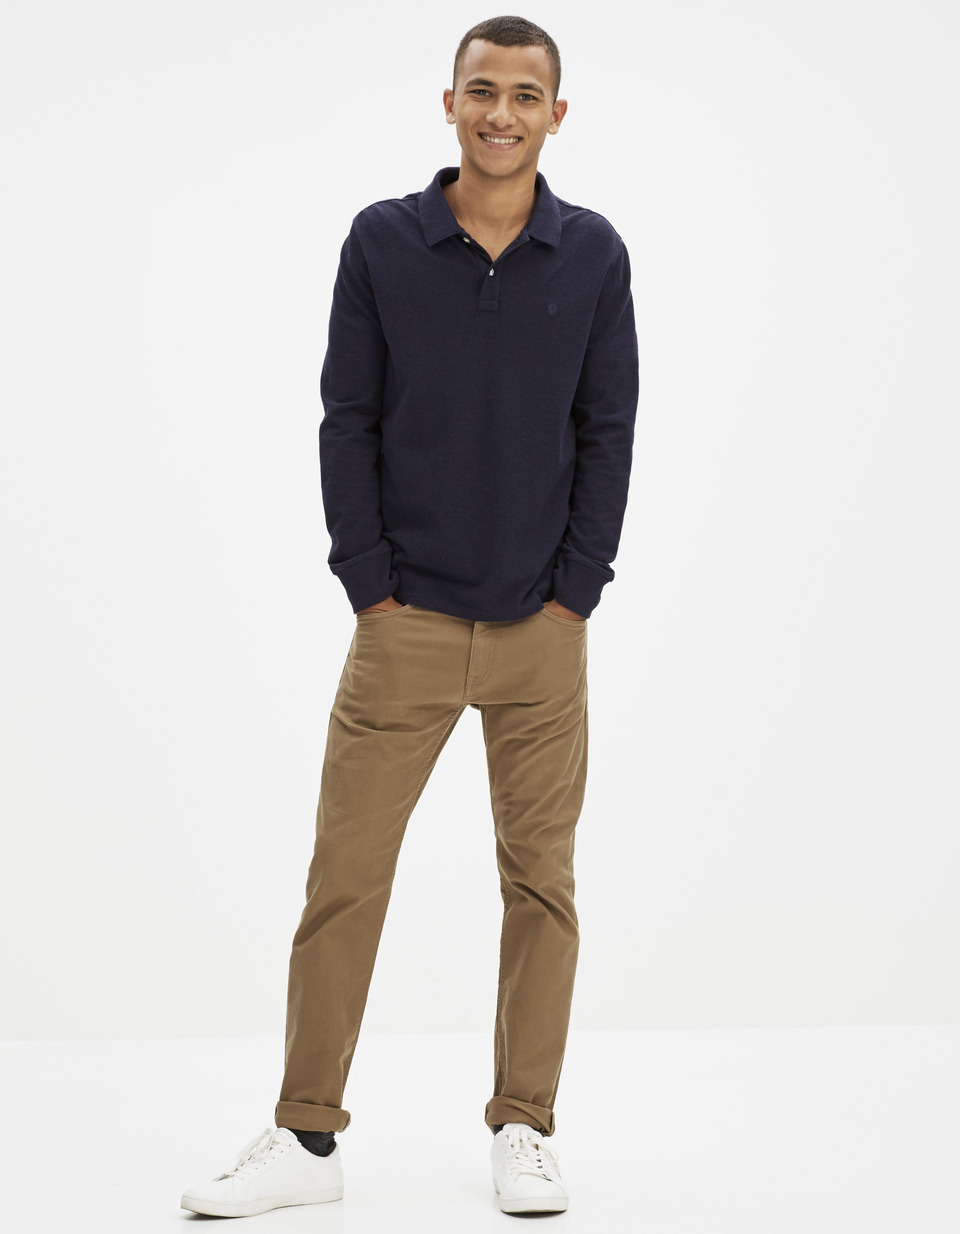 Top Polo 100% coton manches longues - FEPOLOML - Celio France RN92